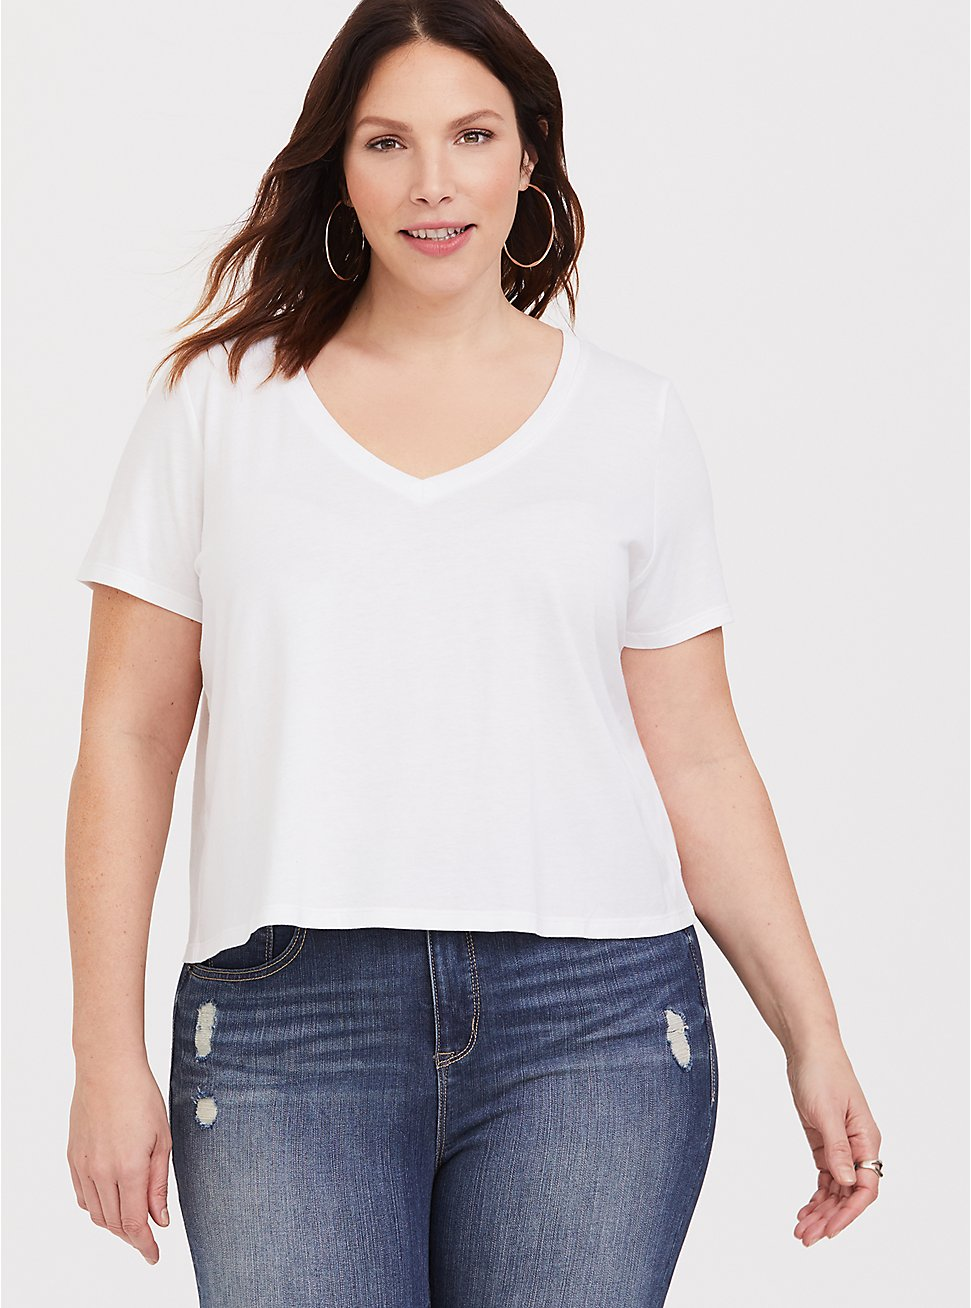 Crop Classic Fit V-Neck Tee - Heritage Cotton White, BRIGHT WHITE, hi-res